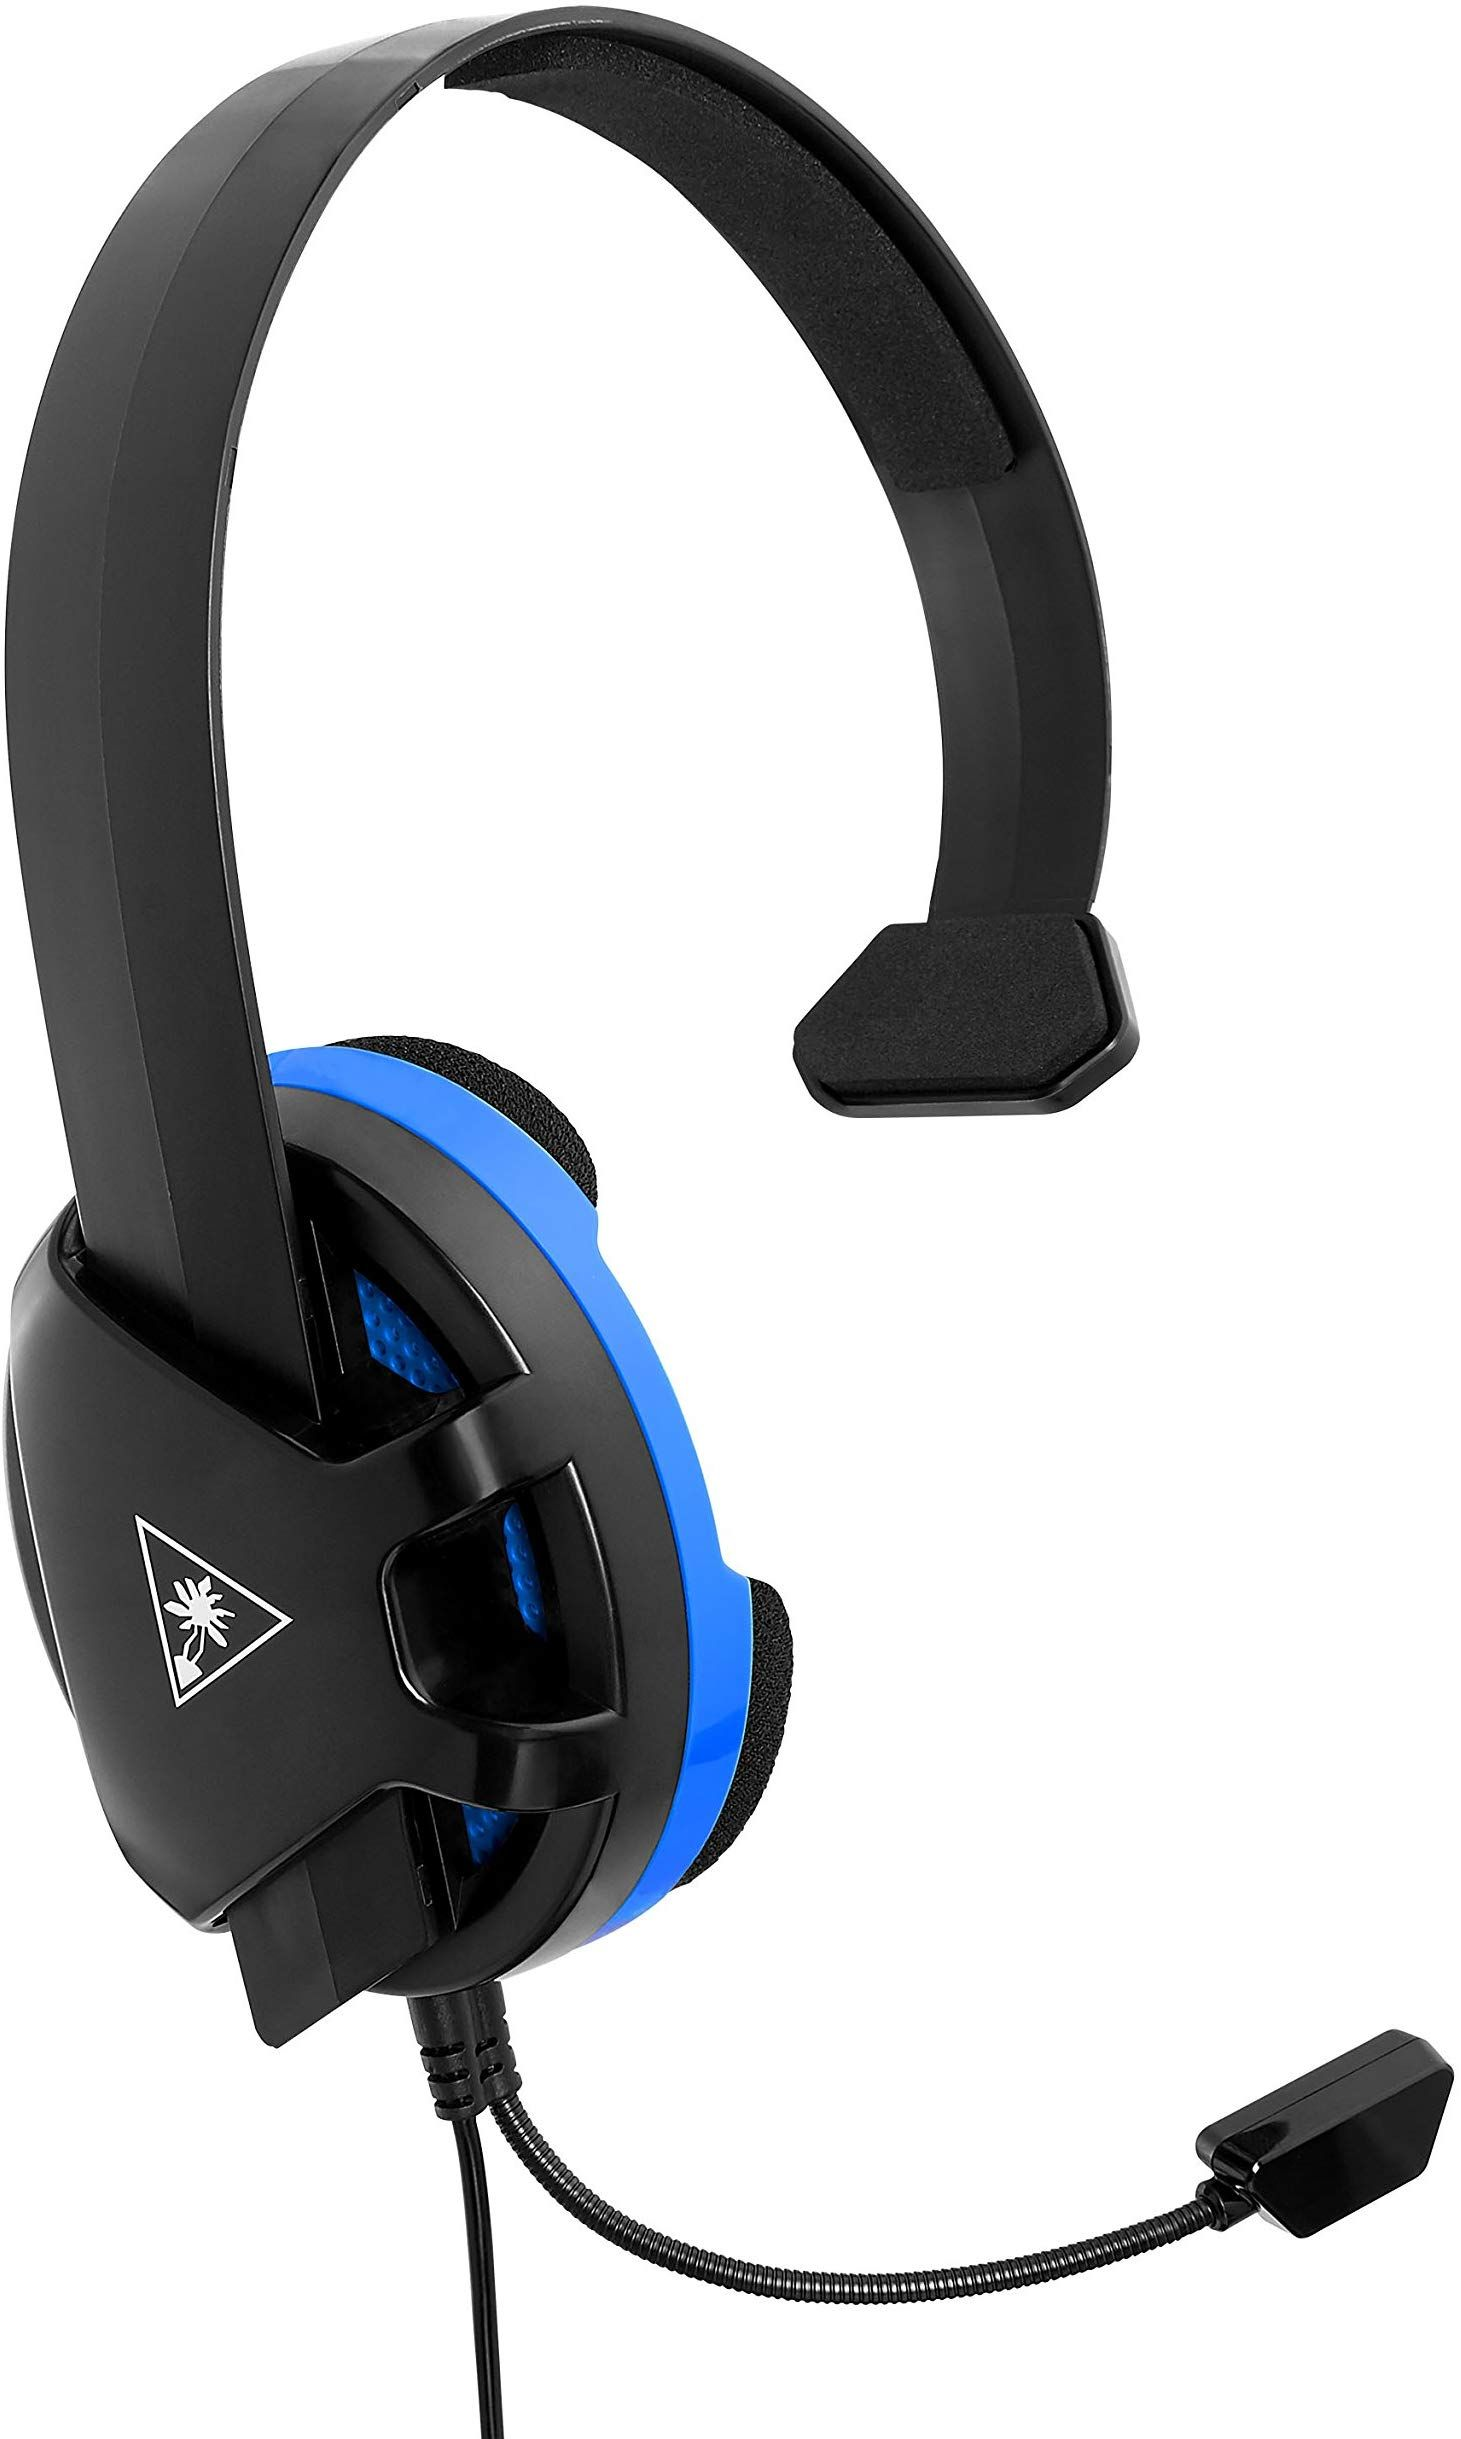 Turtle Beach Recon Chat Headset For Ps4 Pro Ps4 Best Gaming Headset Wireless Gaming Headset Gaming Headset